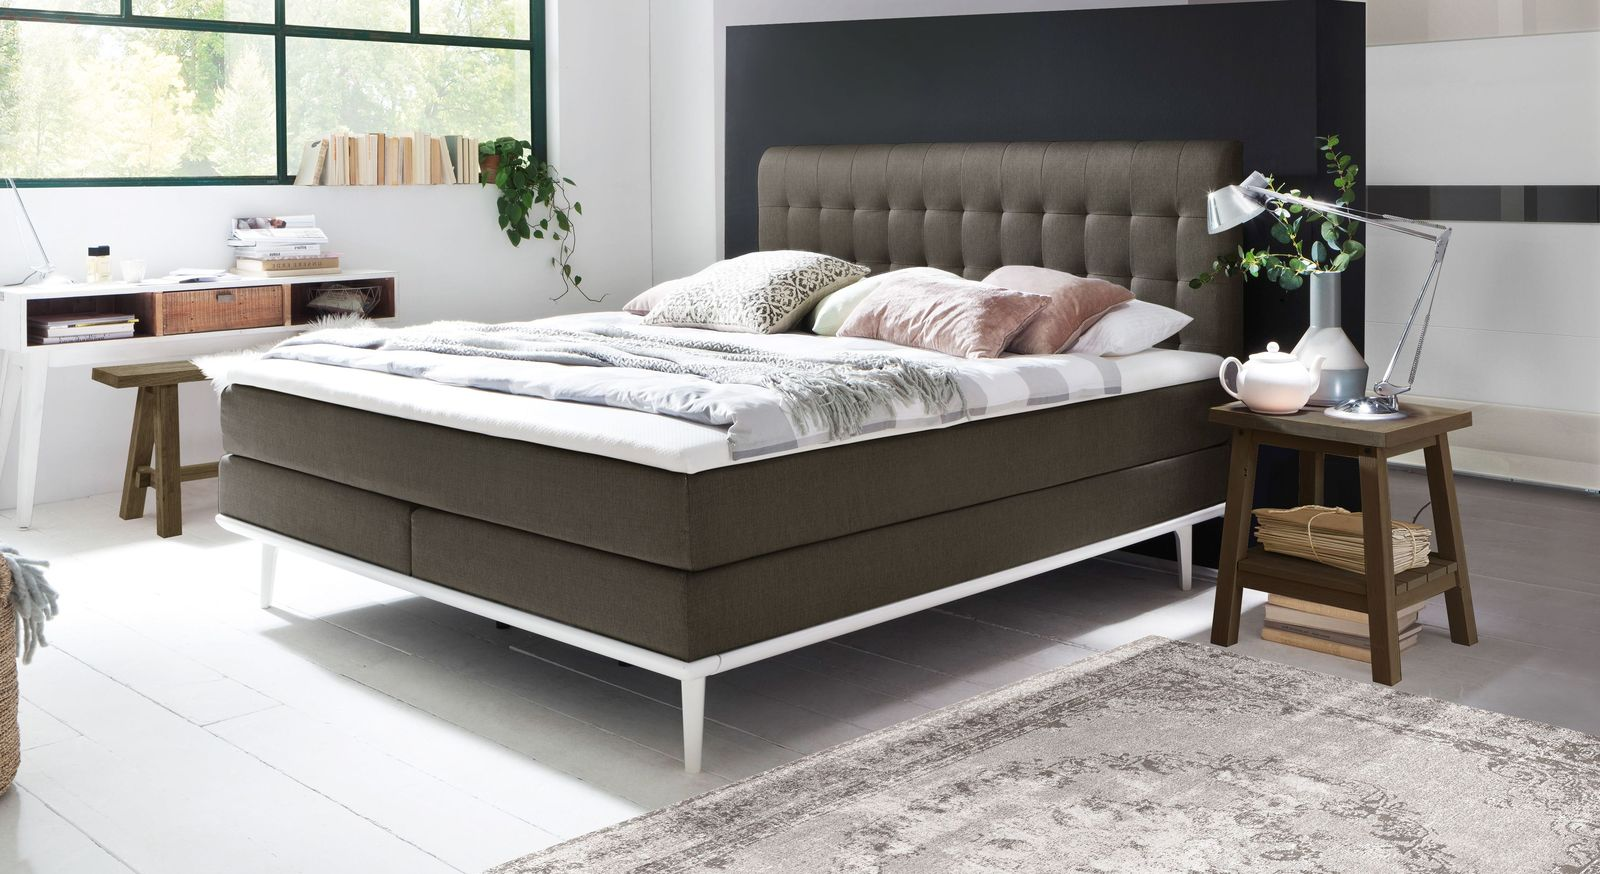 Boxspringbett Tromello aus anthrazitfarbenem Webstoff